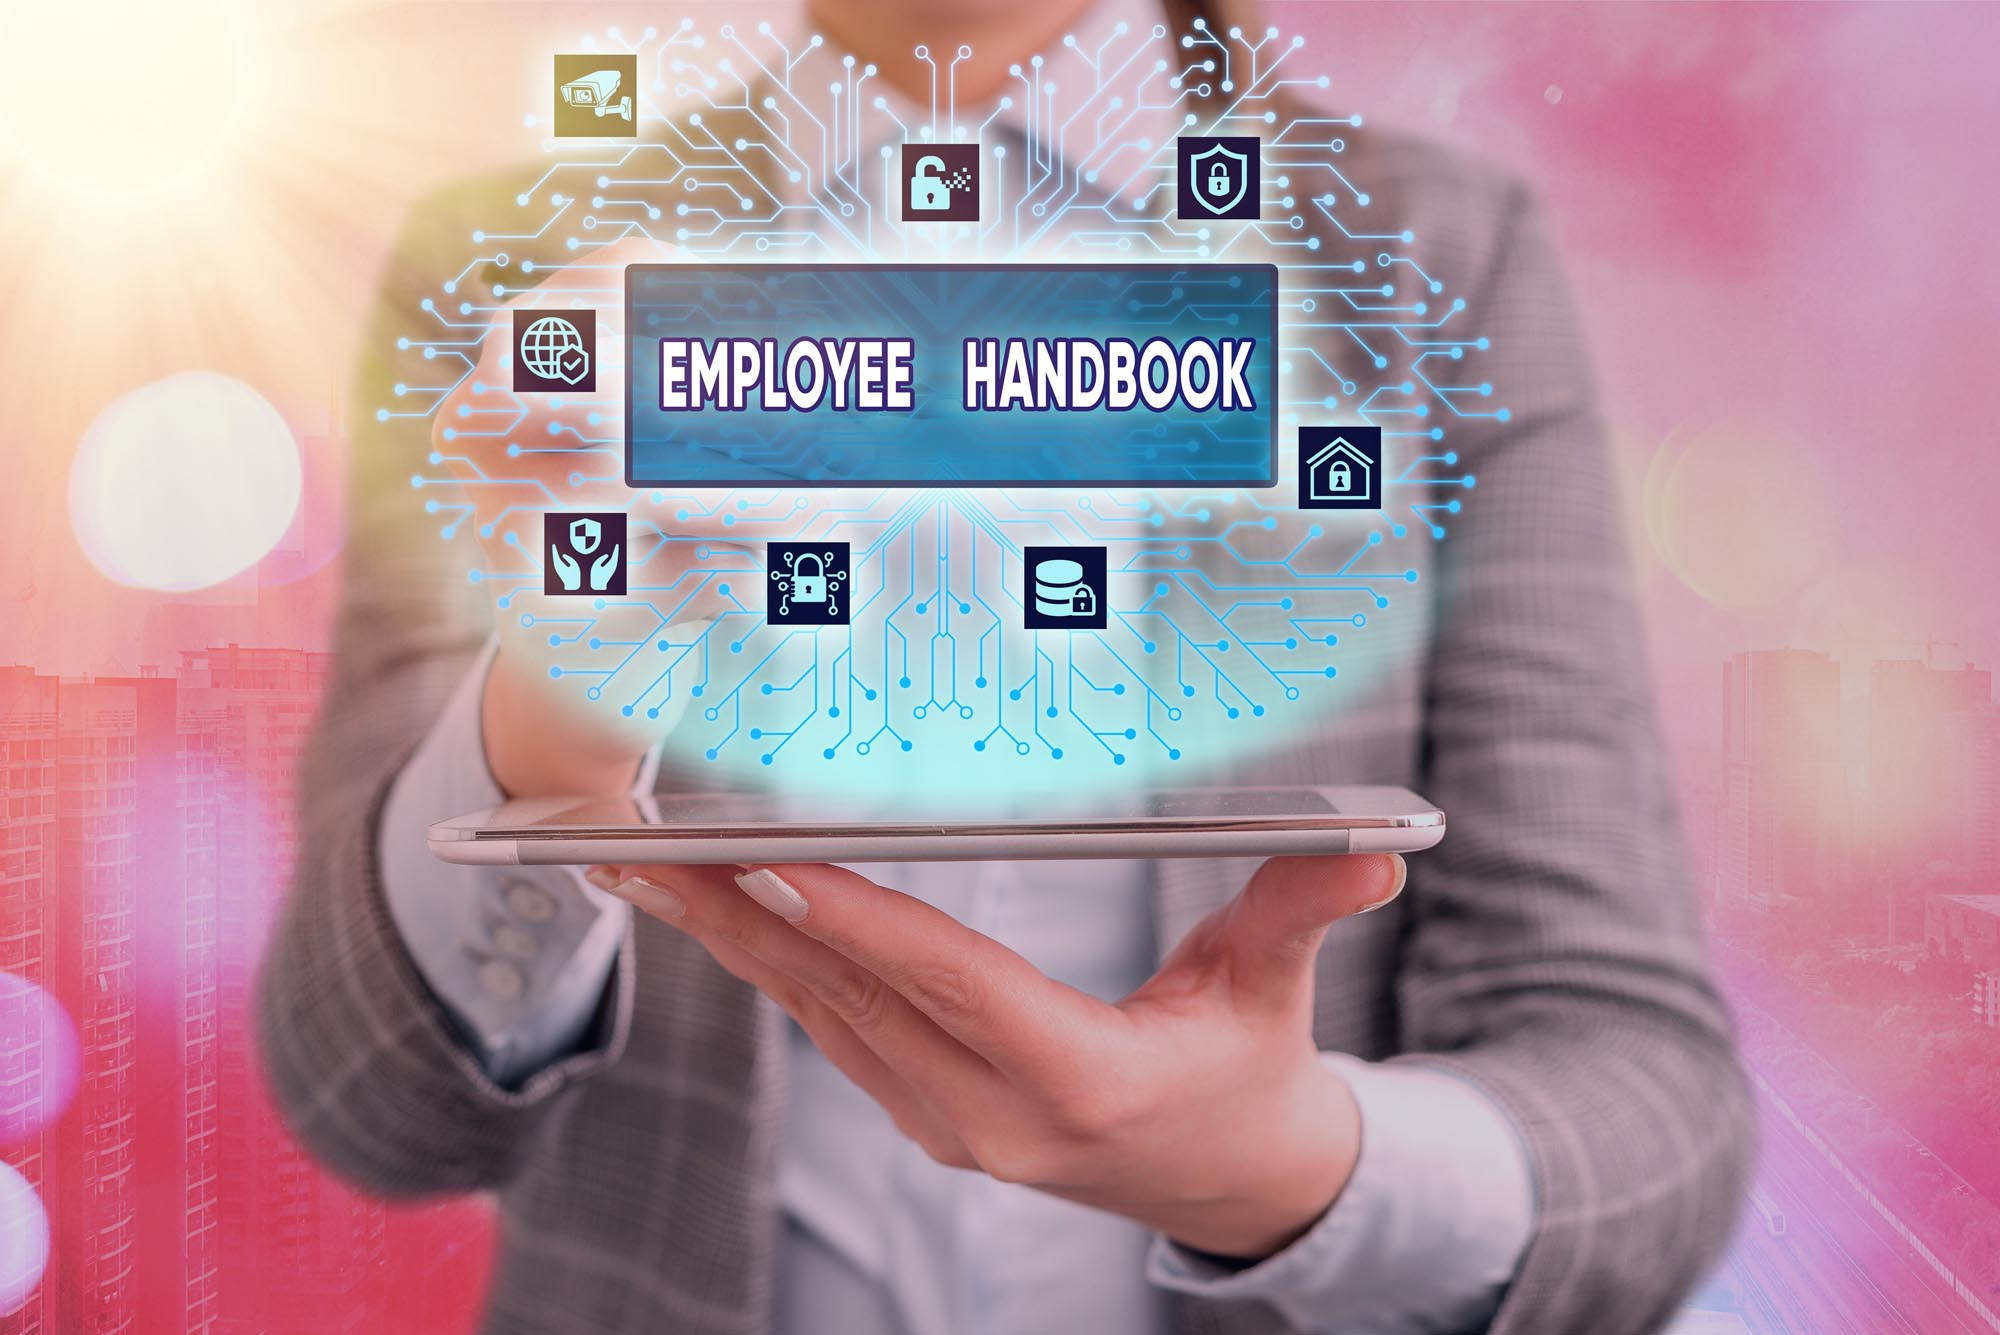 Digital Employee Handbook Best Practices